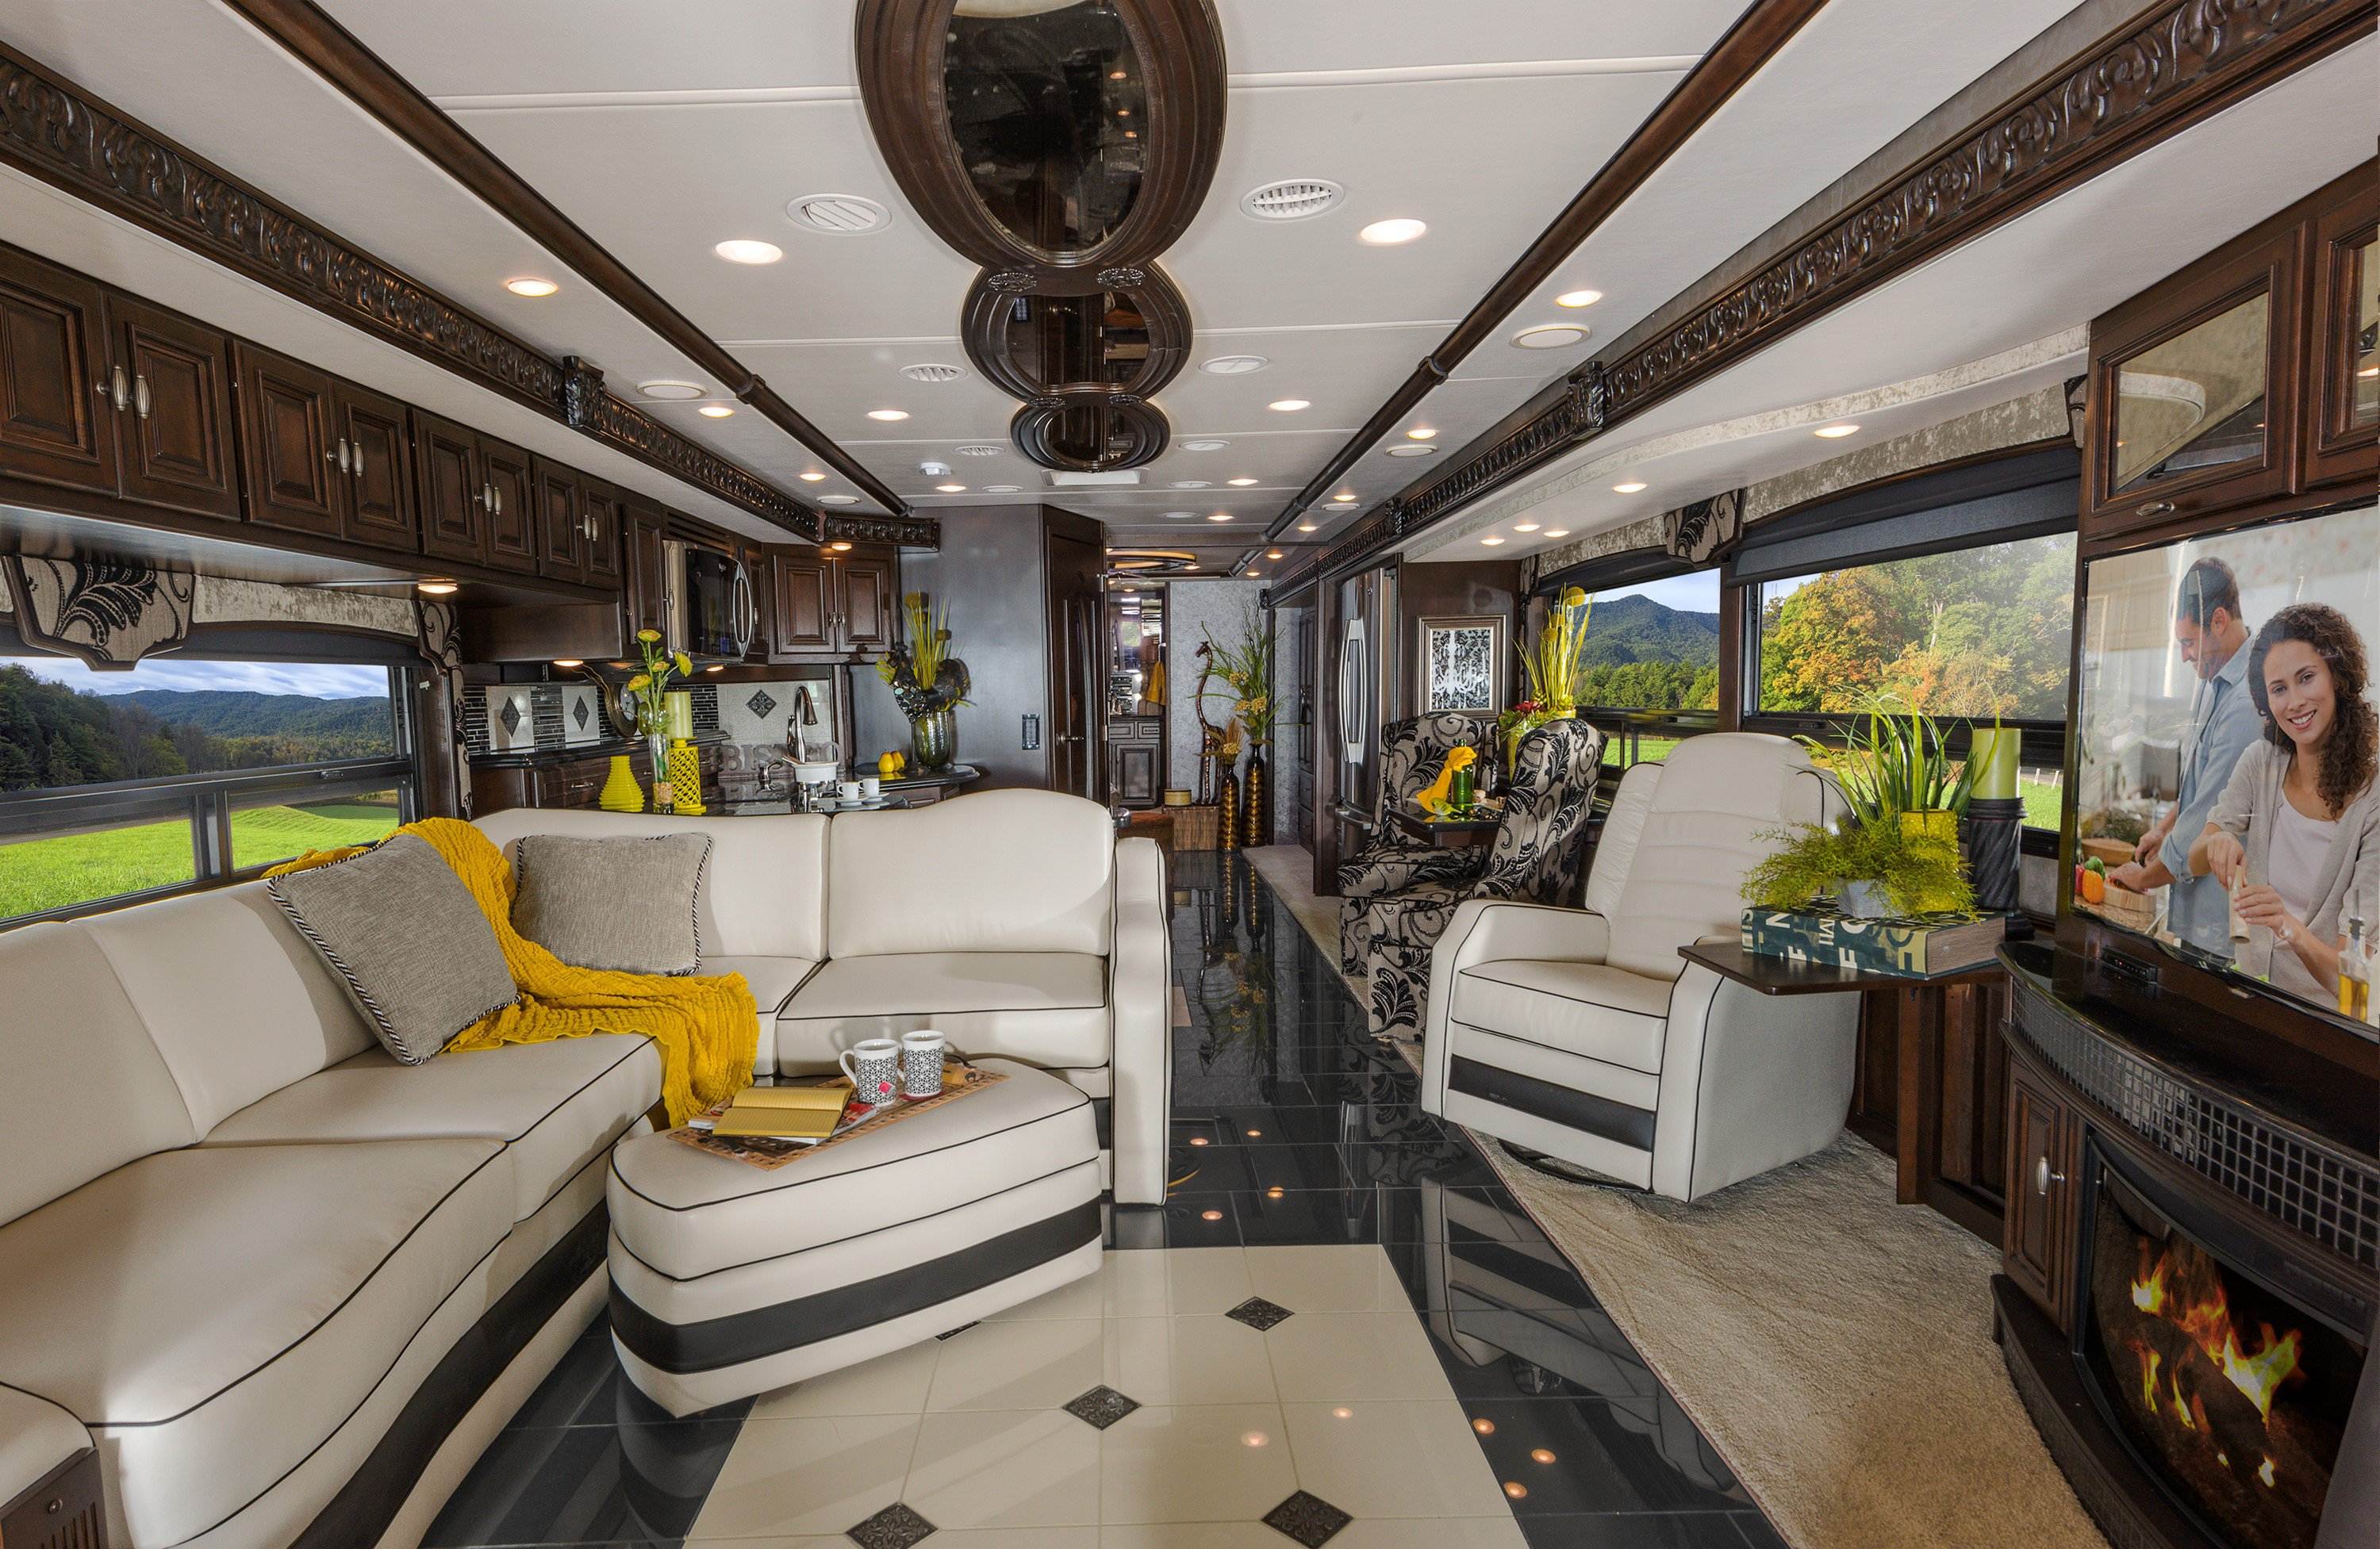 The All New 2015 Itasca Ellipse Ultra Rv Life